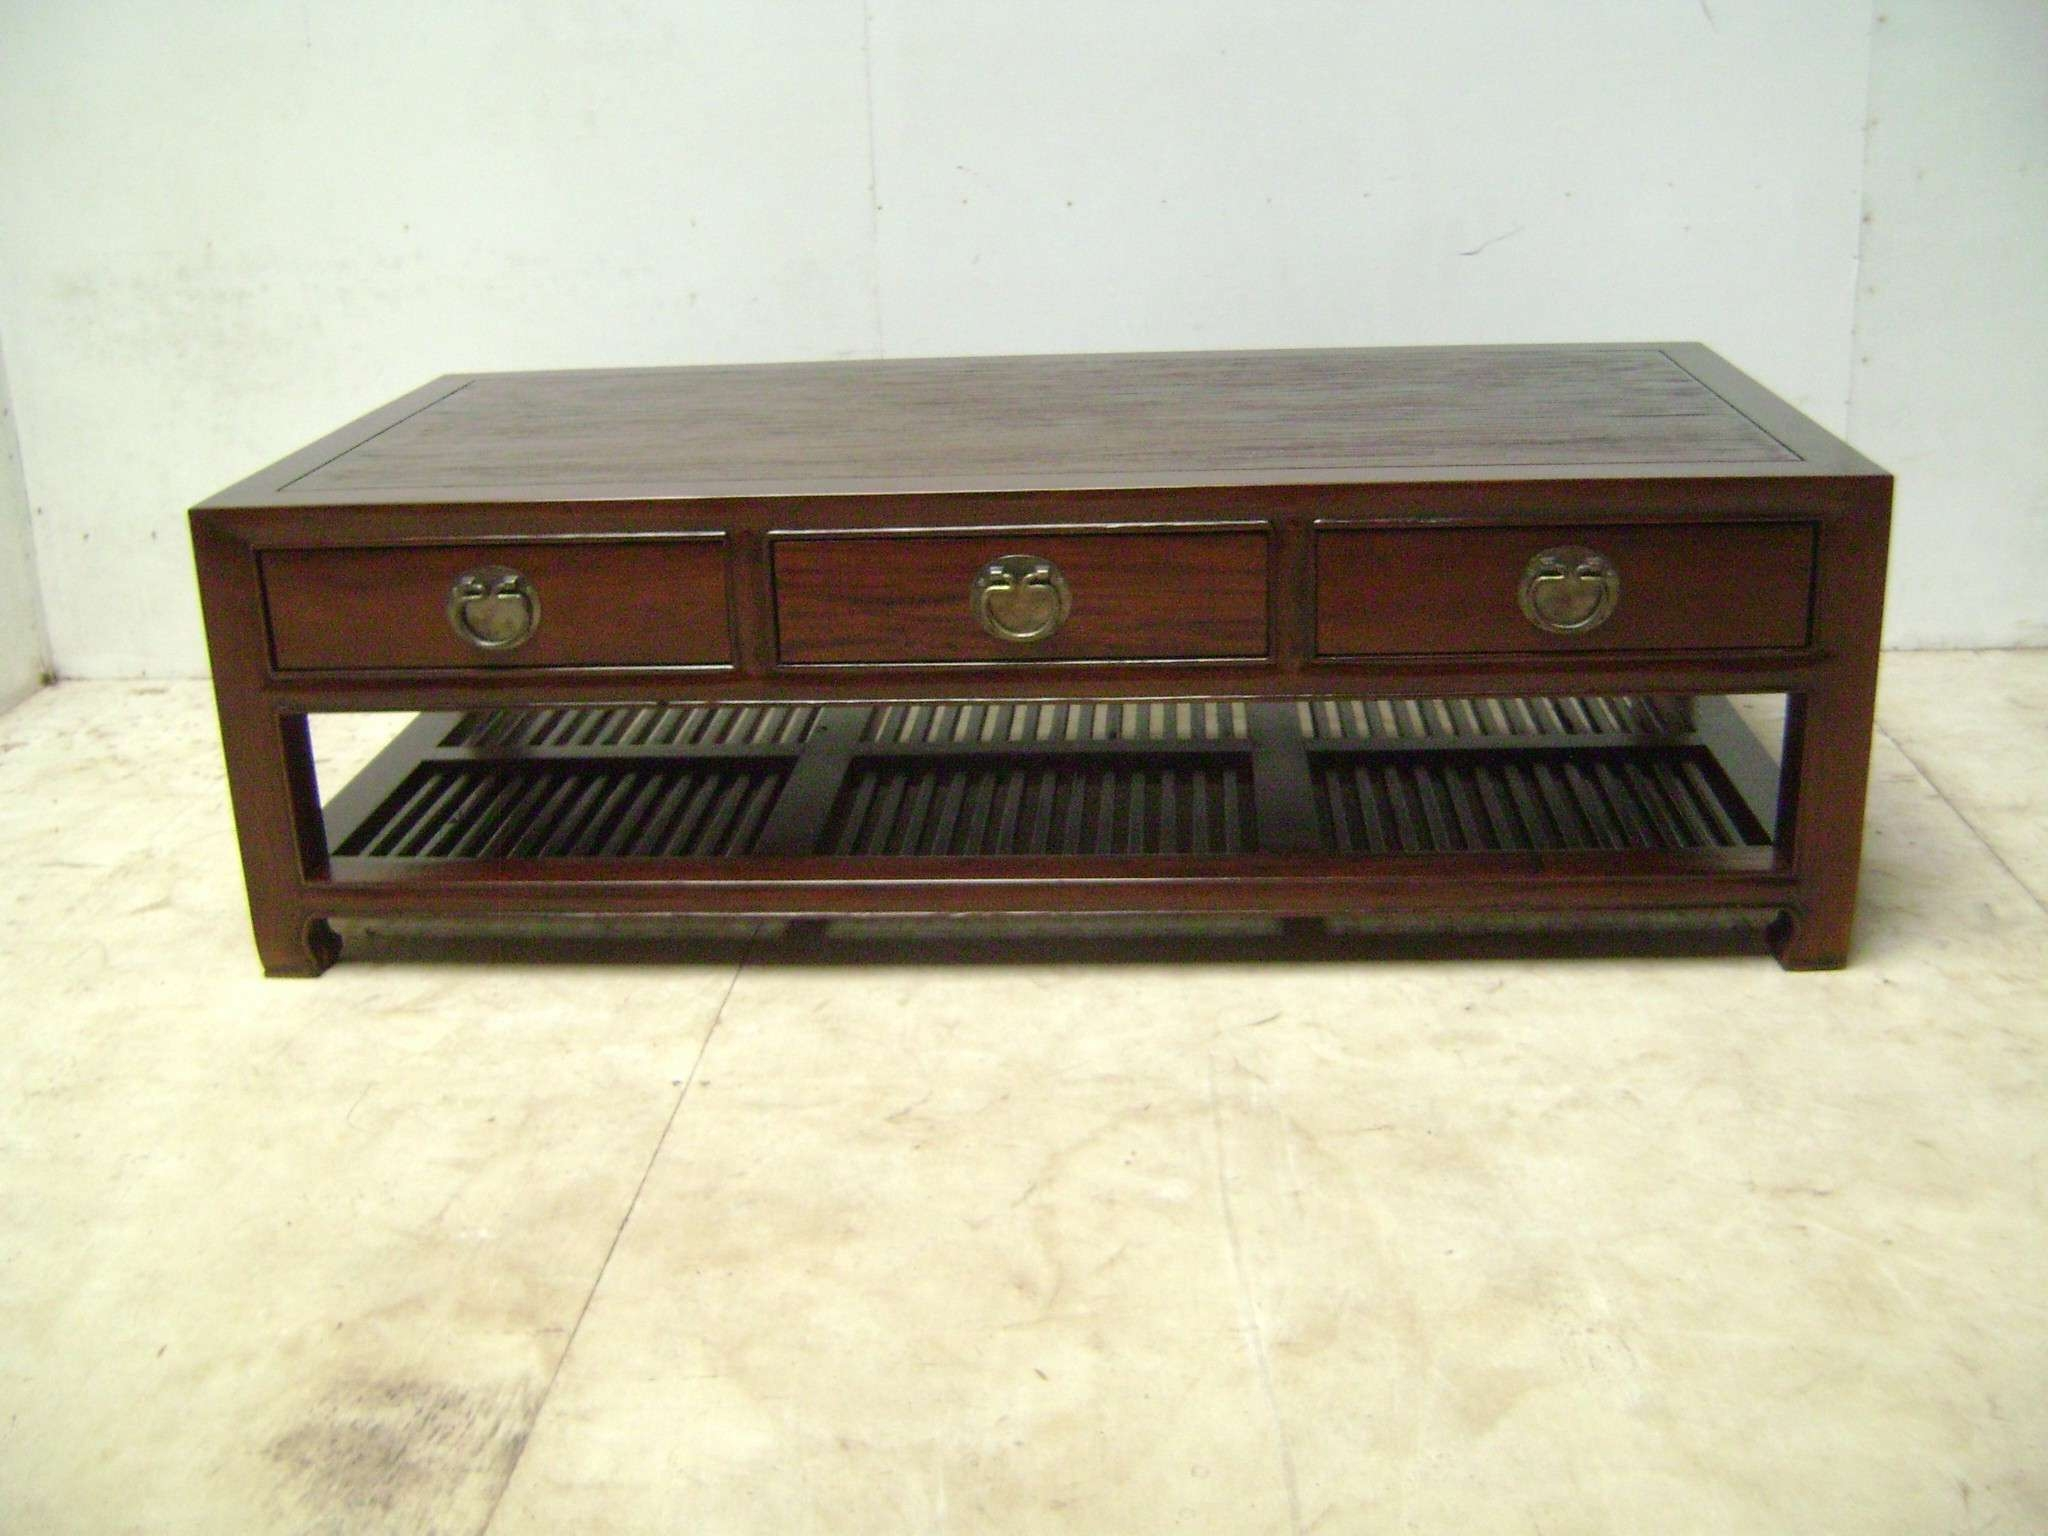 Fashionable Low Coffee Tables With Drawers With 3 Drawer Chinese Coffee Table Chinese Coffee Tables Australia (View 4 of 20)